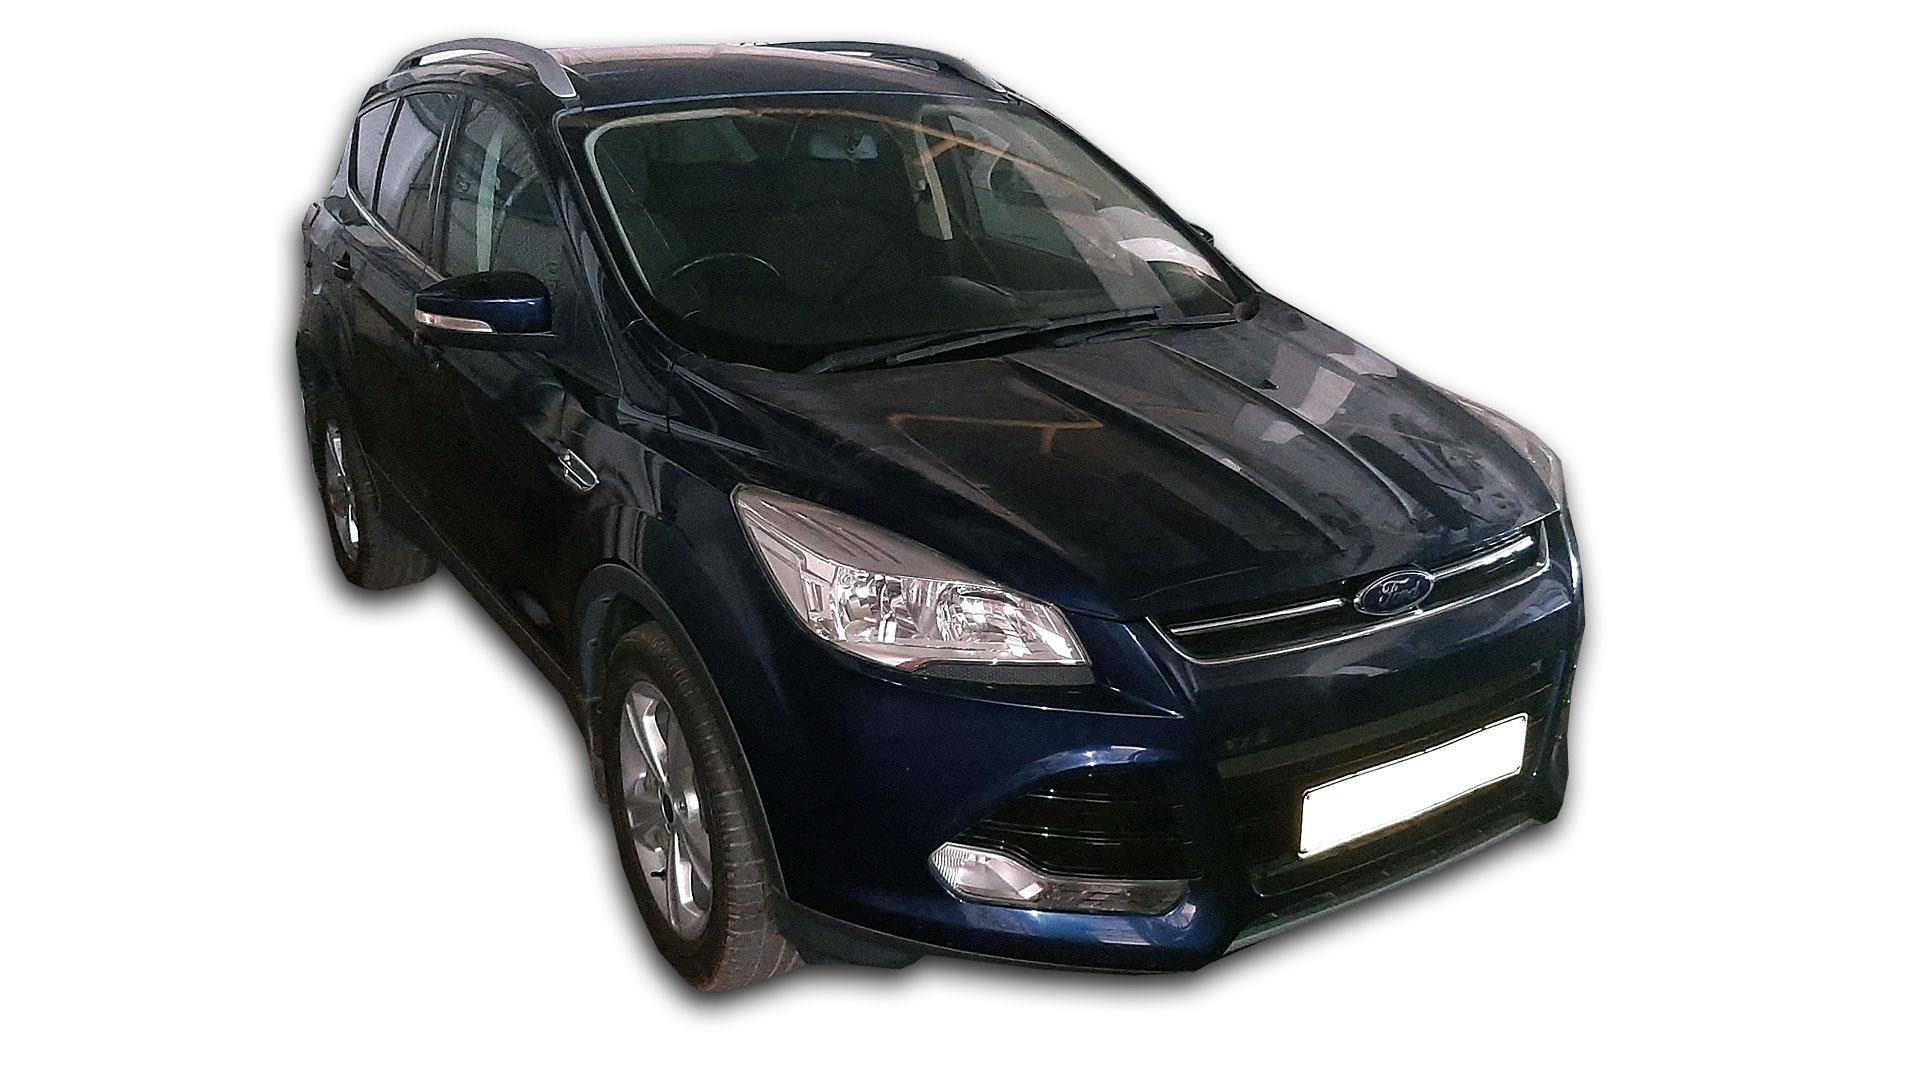 Ford Kuga 1.6 Ecoboost Ambient